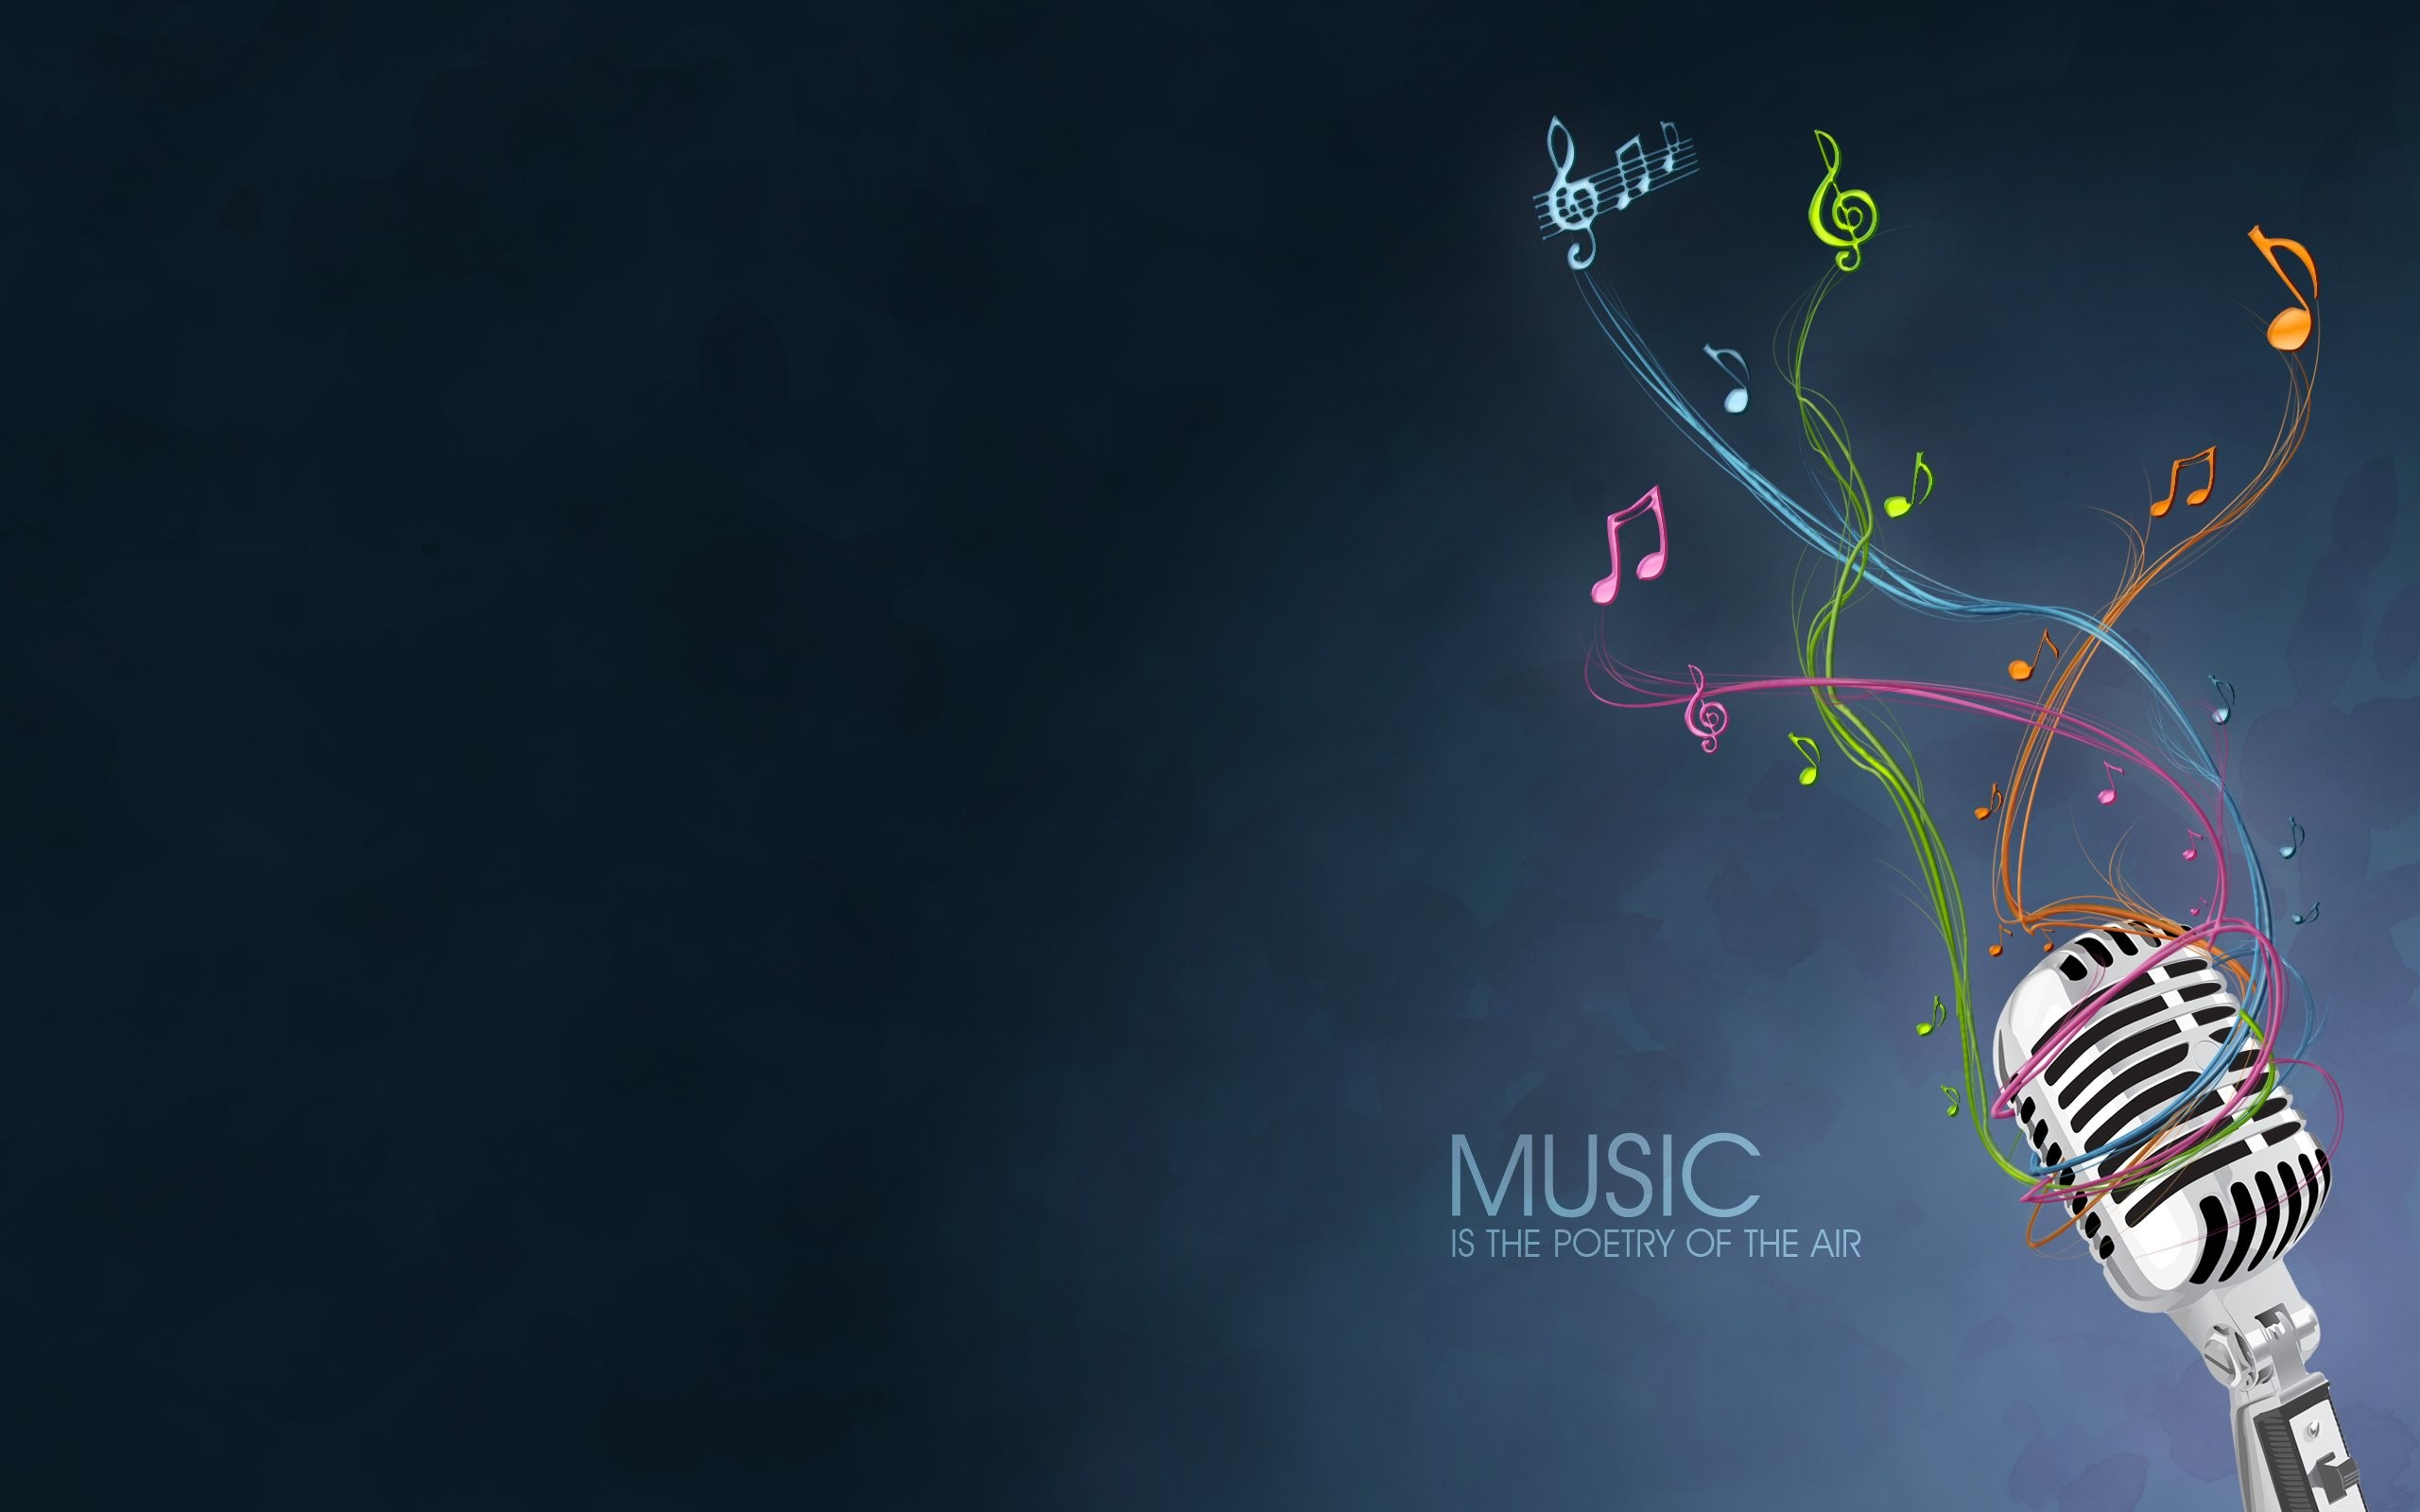 Music wallpaper backgrounds 66 images - Music hd wallpapers free download ...